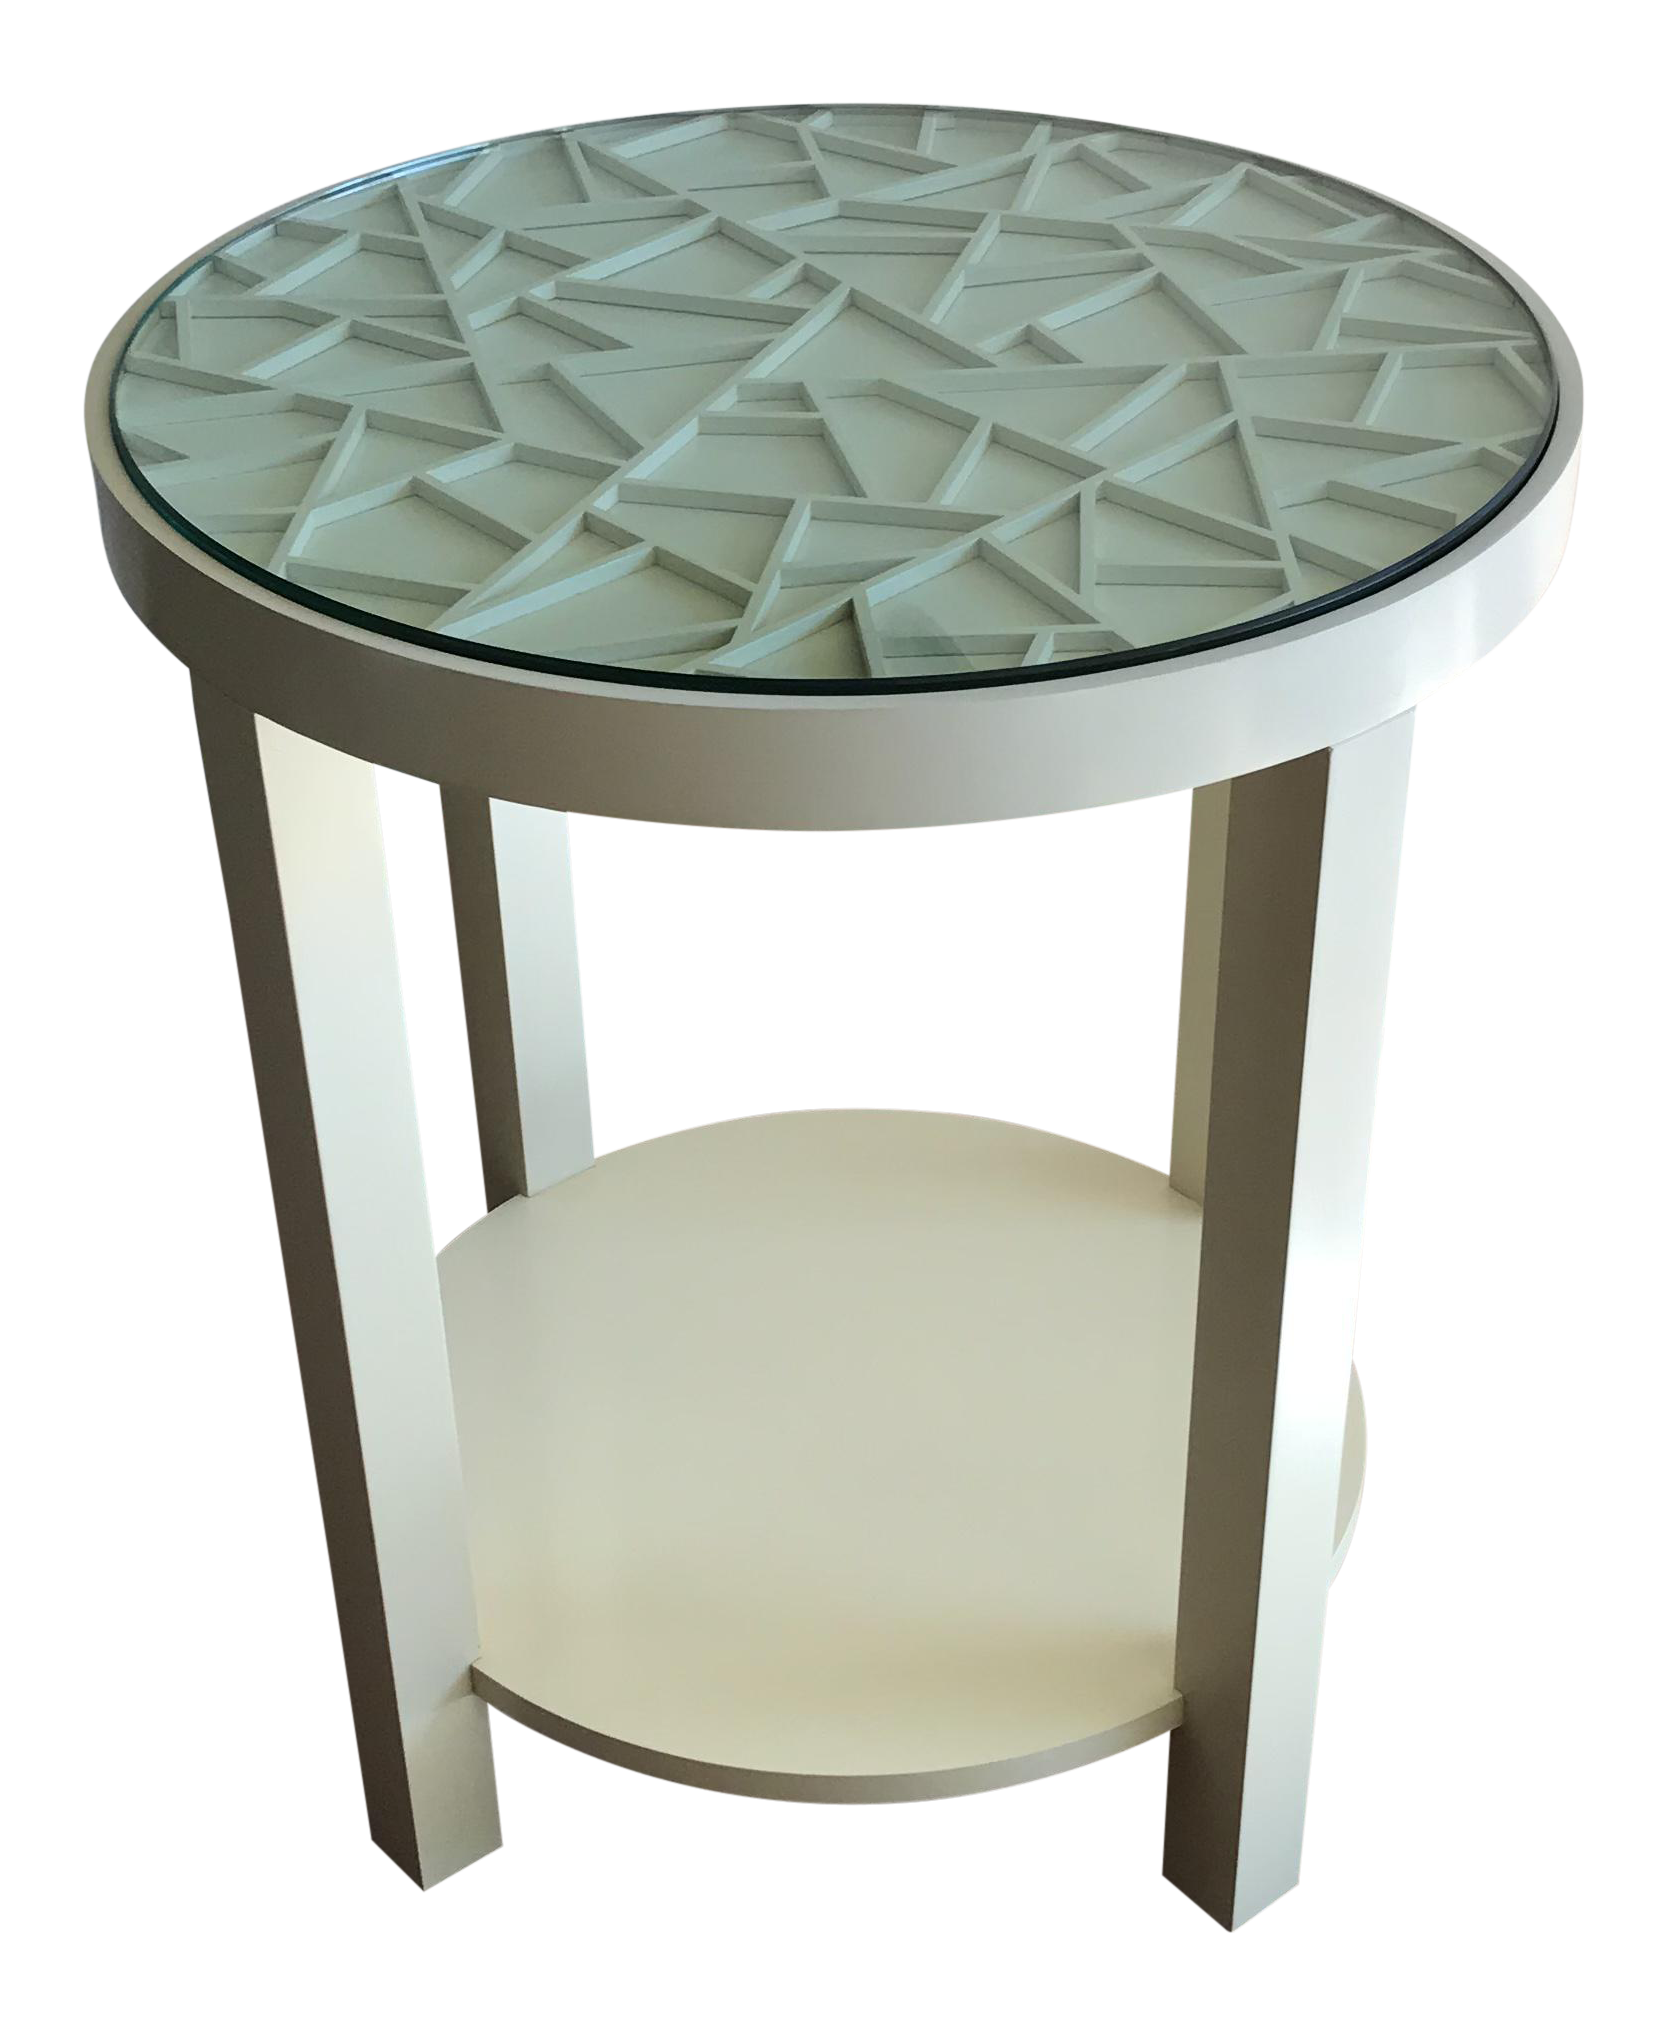 baker furniture round off white with glass top accent table chairish grooming fretwork coffee spencer industrial look end tables jcpenney couches wicker and chairs home deco